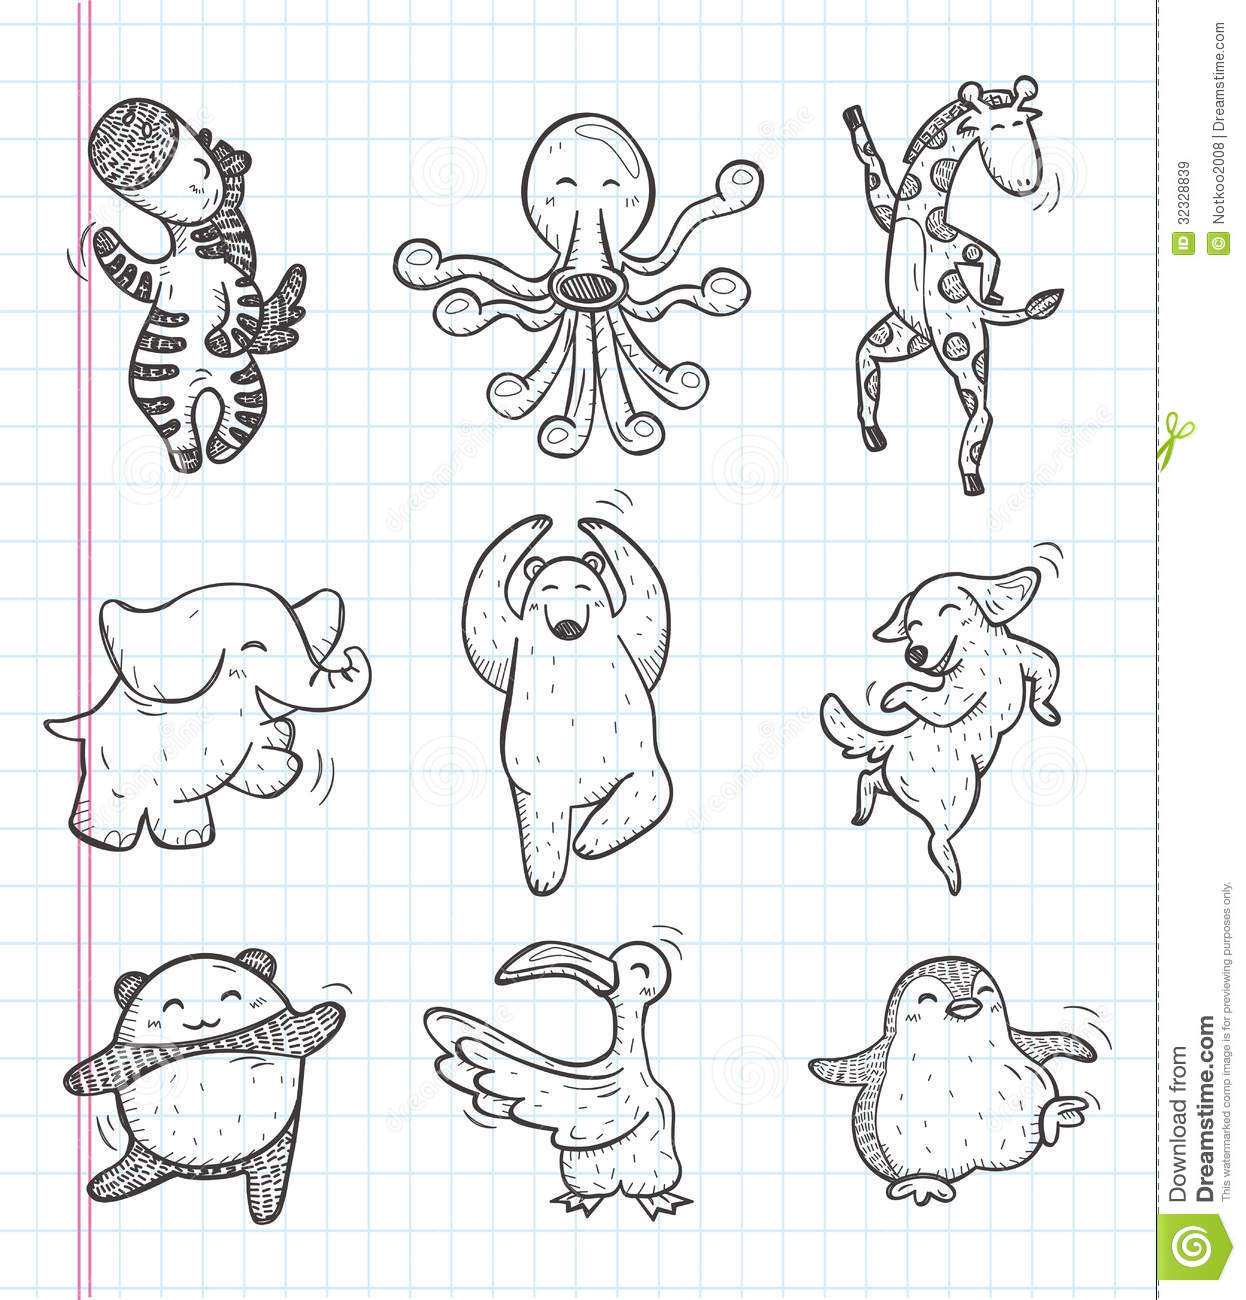 design and decorate with Royalty Free Stock Images Doodle Animal Dance Icons Cartoon Vector Illustration Image32328839 on Bike Stickers besides Free Christmas Printable Coloring Sheets Worksheets Pages For Kids 2015 additionally Monkey Shape Templates also Royalty Free Stock Images Doodle Animal Dance Icons Cartoon Vector Illustration Image32328839 besides 1055599895523499.